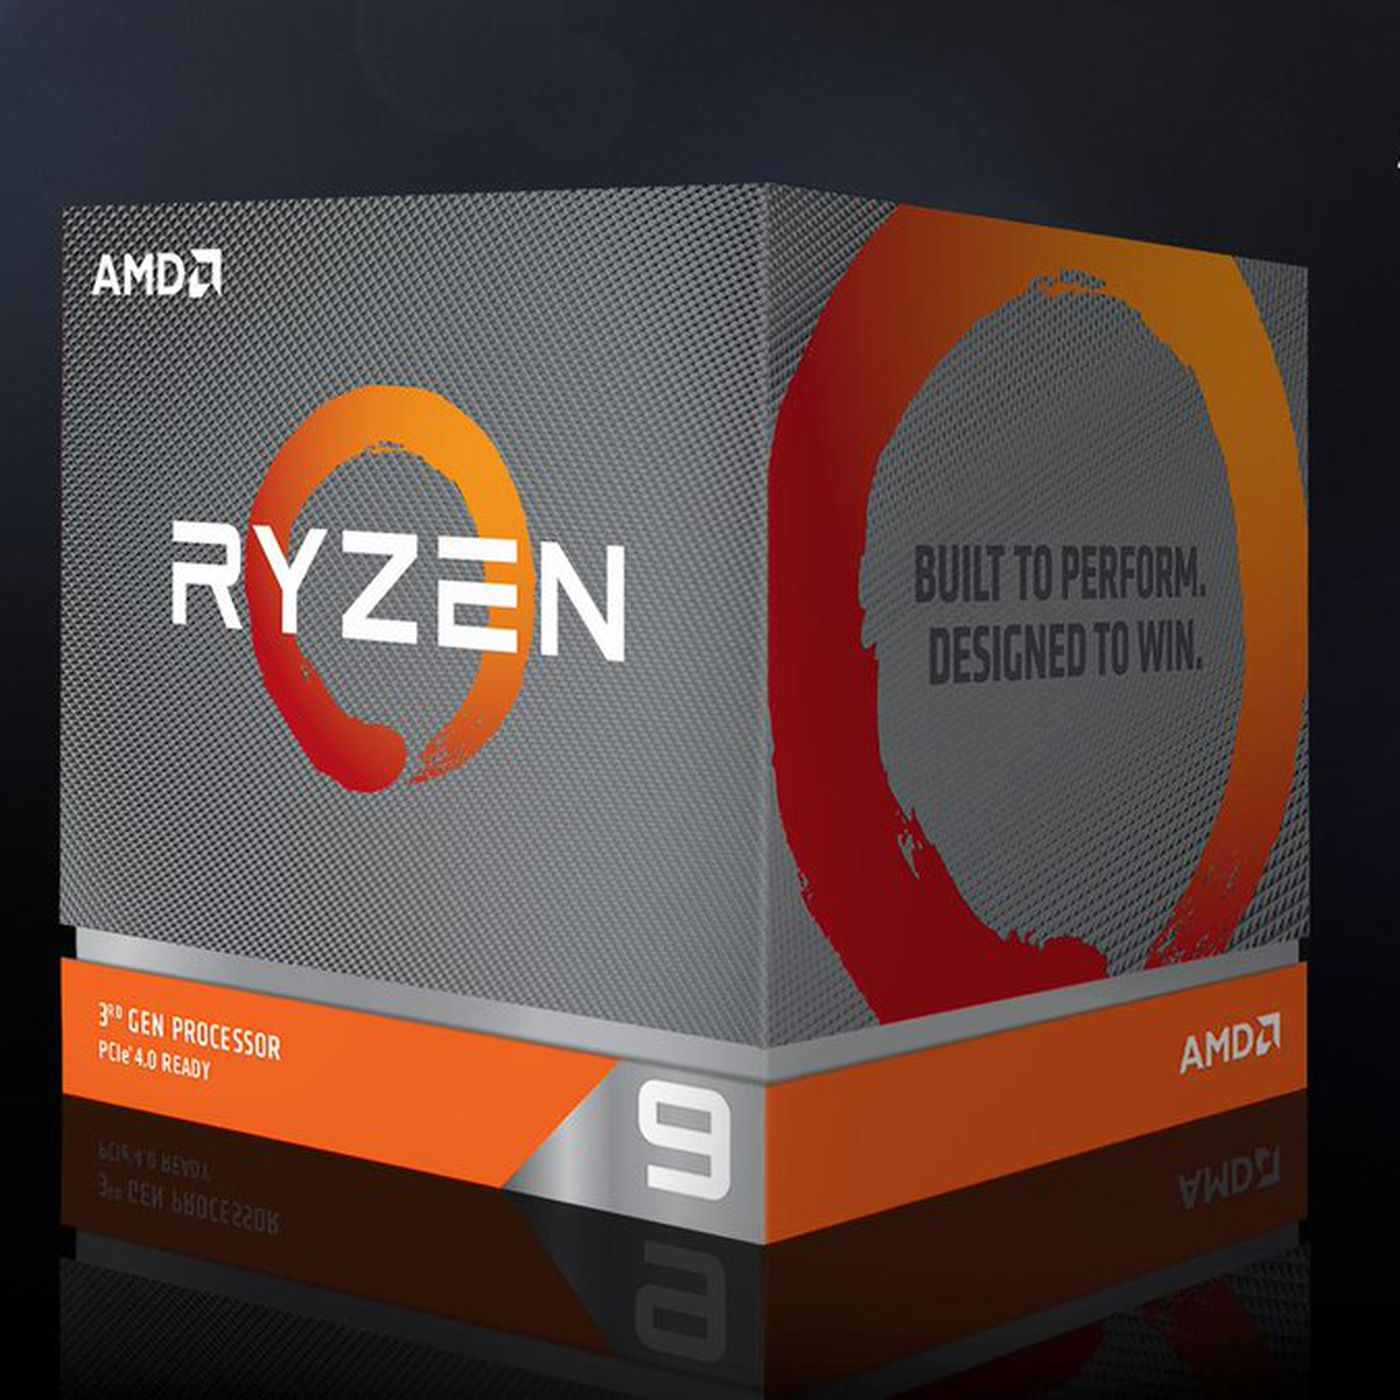 AMD Ryzen 3900X and 3700X review roundup: a worthy alternative to